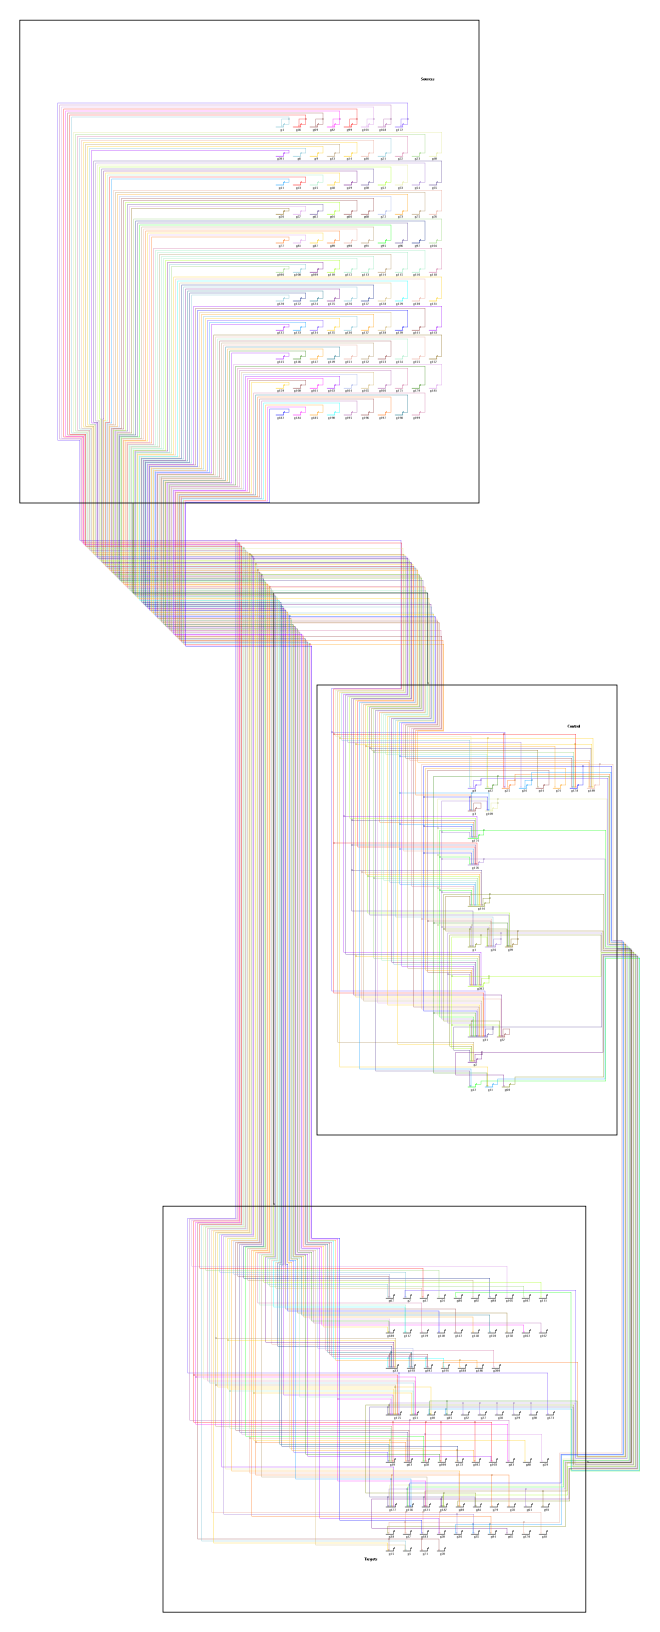 Large Network Overlay Driven Layout Done